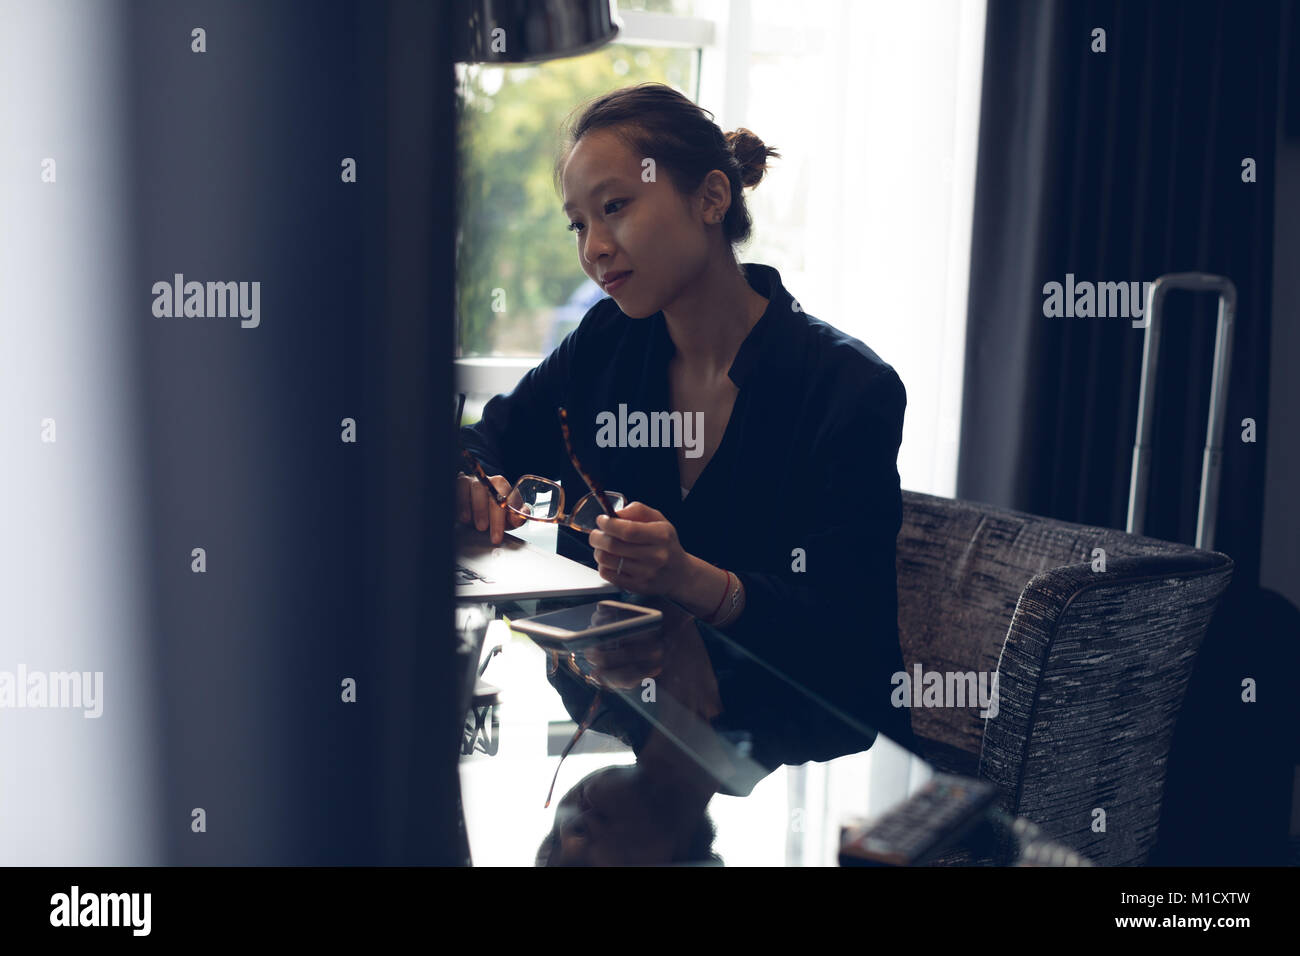 Thoughtful woman sitting with spectacles at table - Stock Image